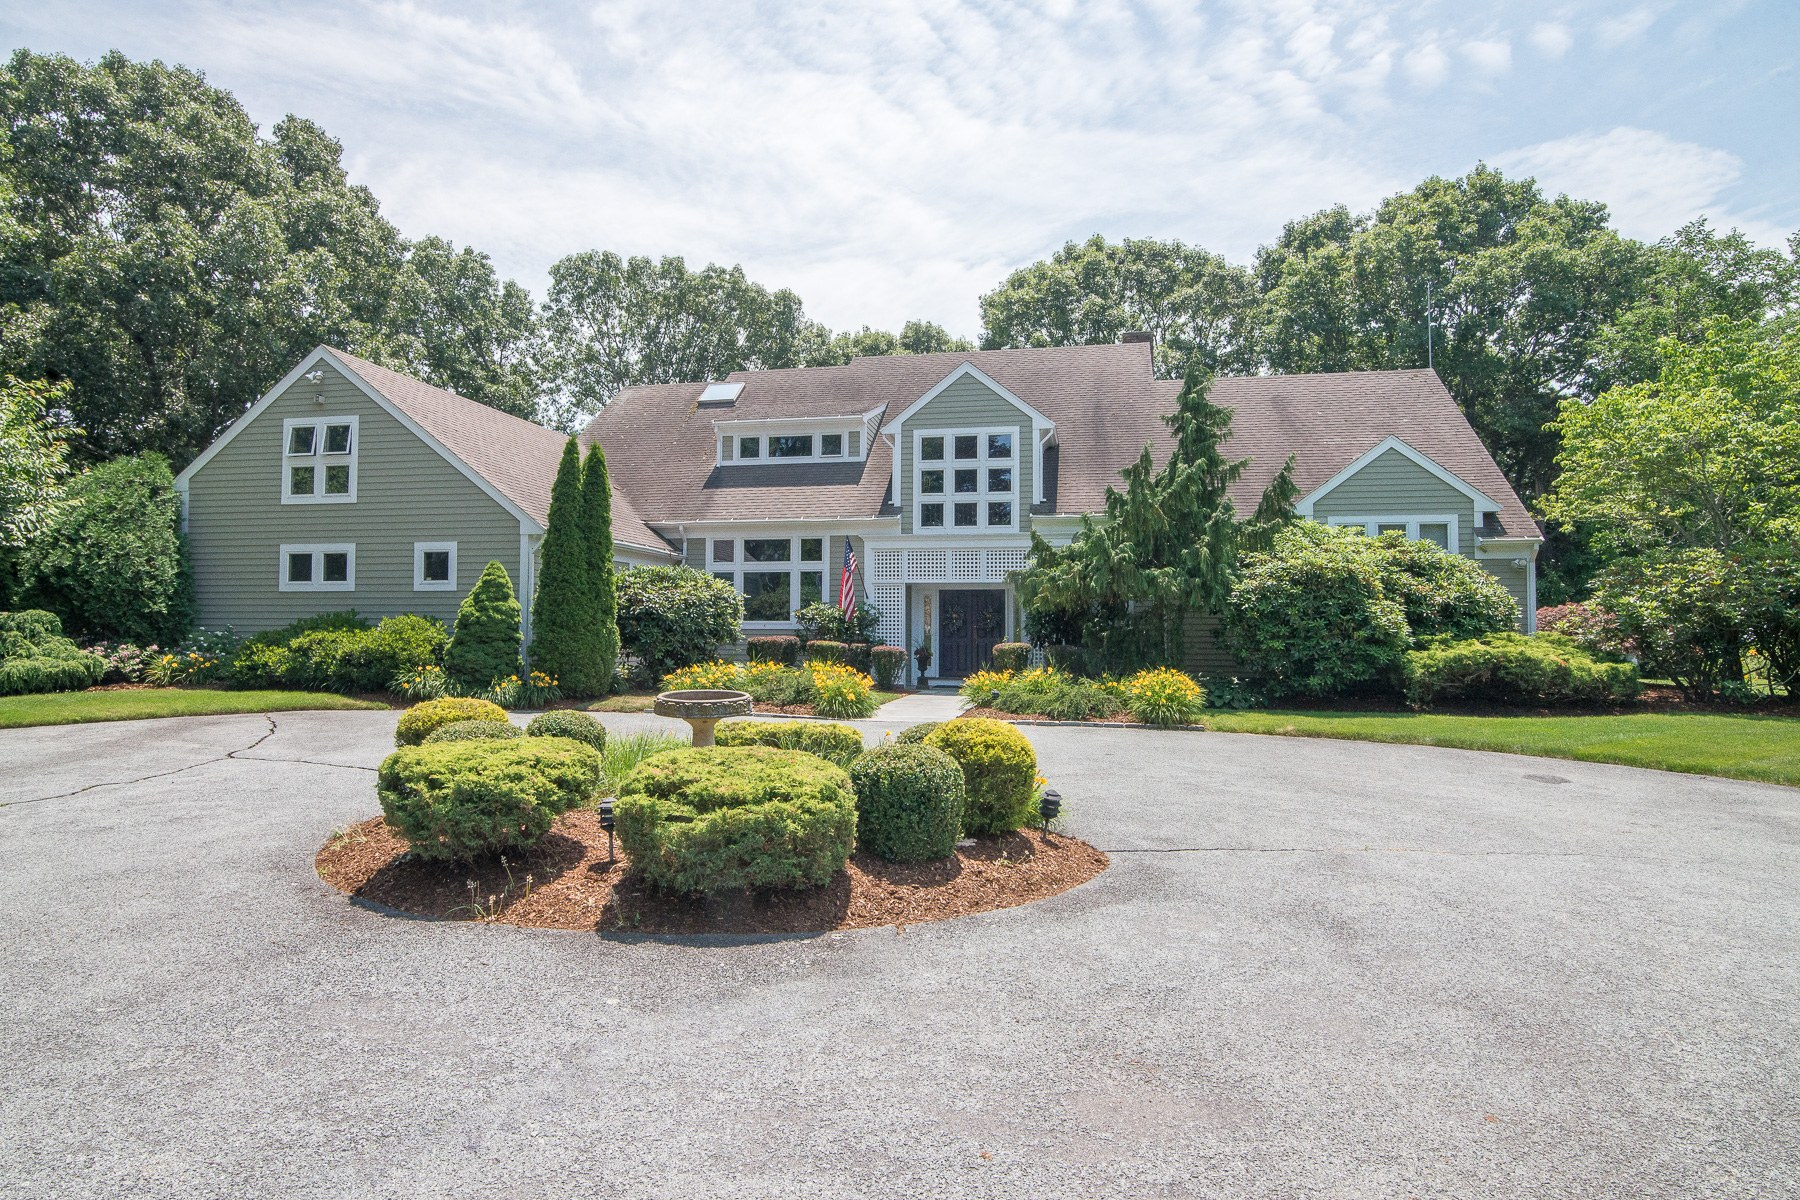 Additional photo for property listing at 8 Lighthouse Lane, Barrington, RI 8 Lighthouse Lane Barrington, Rhode Island 02806 United States